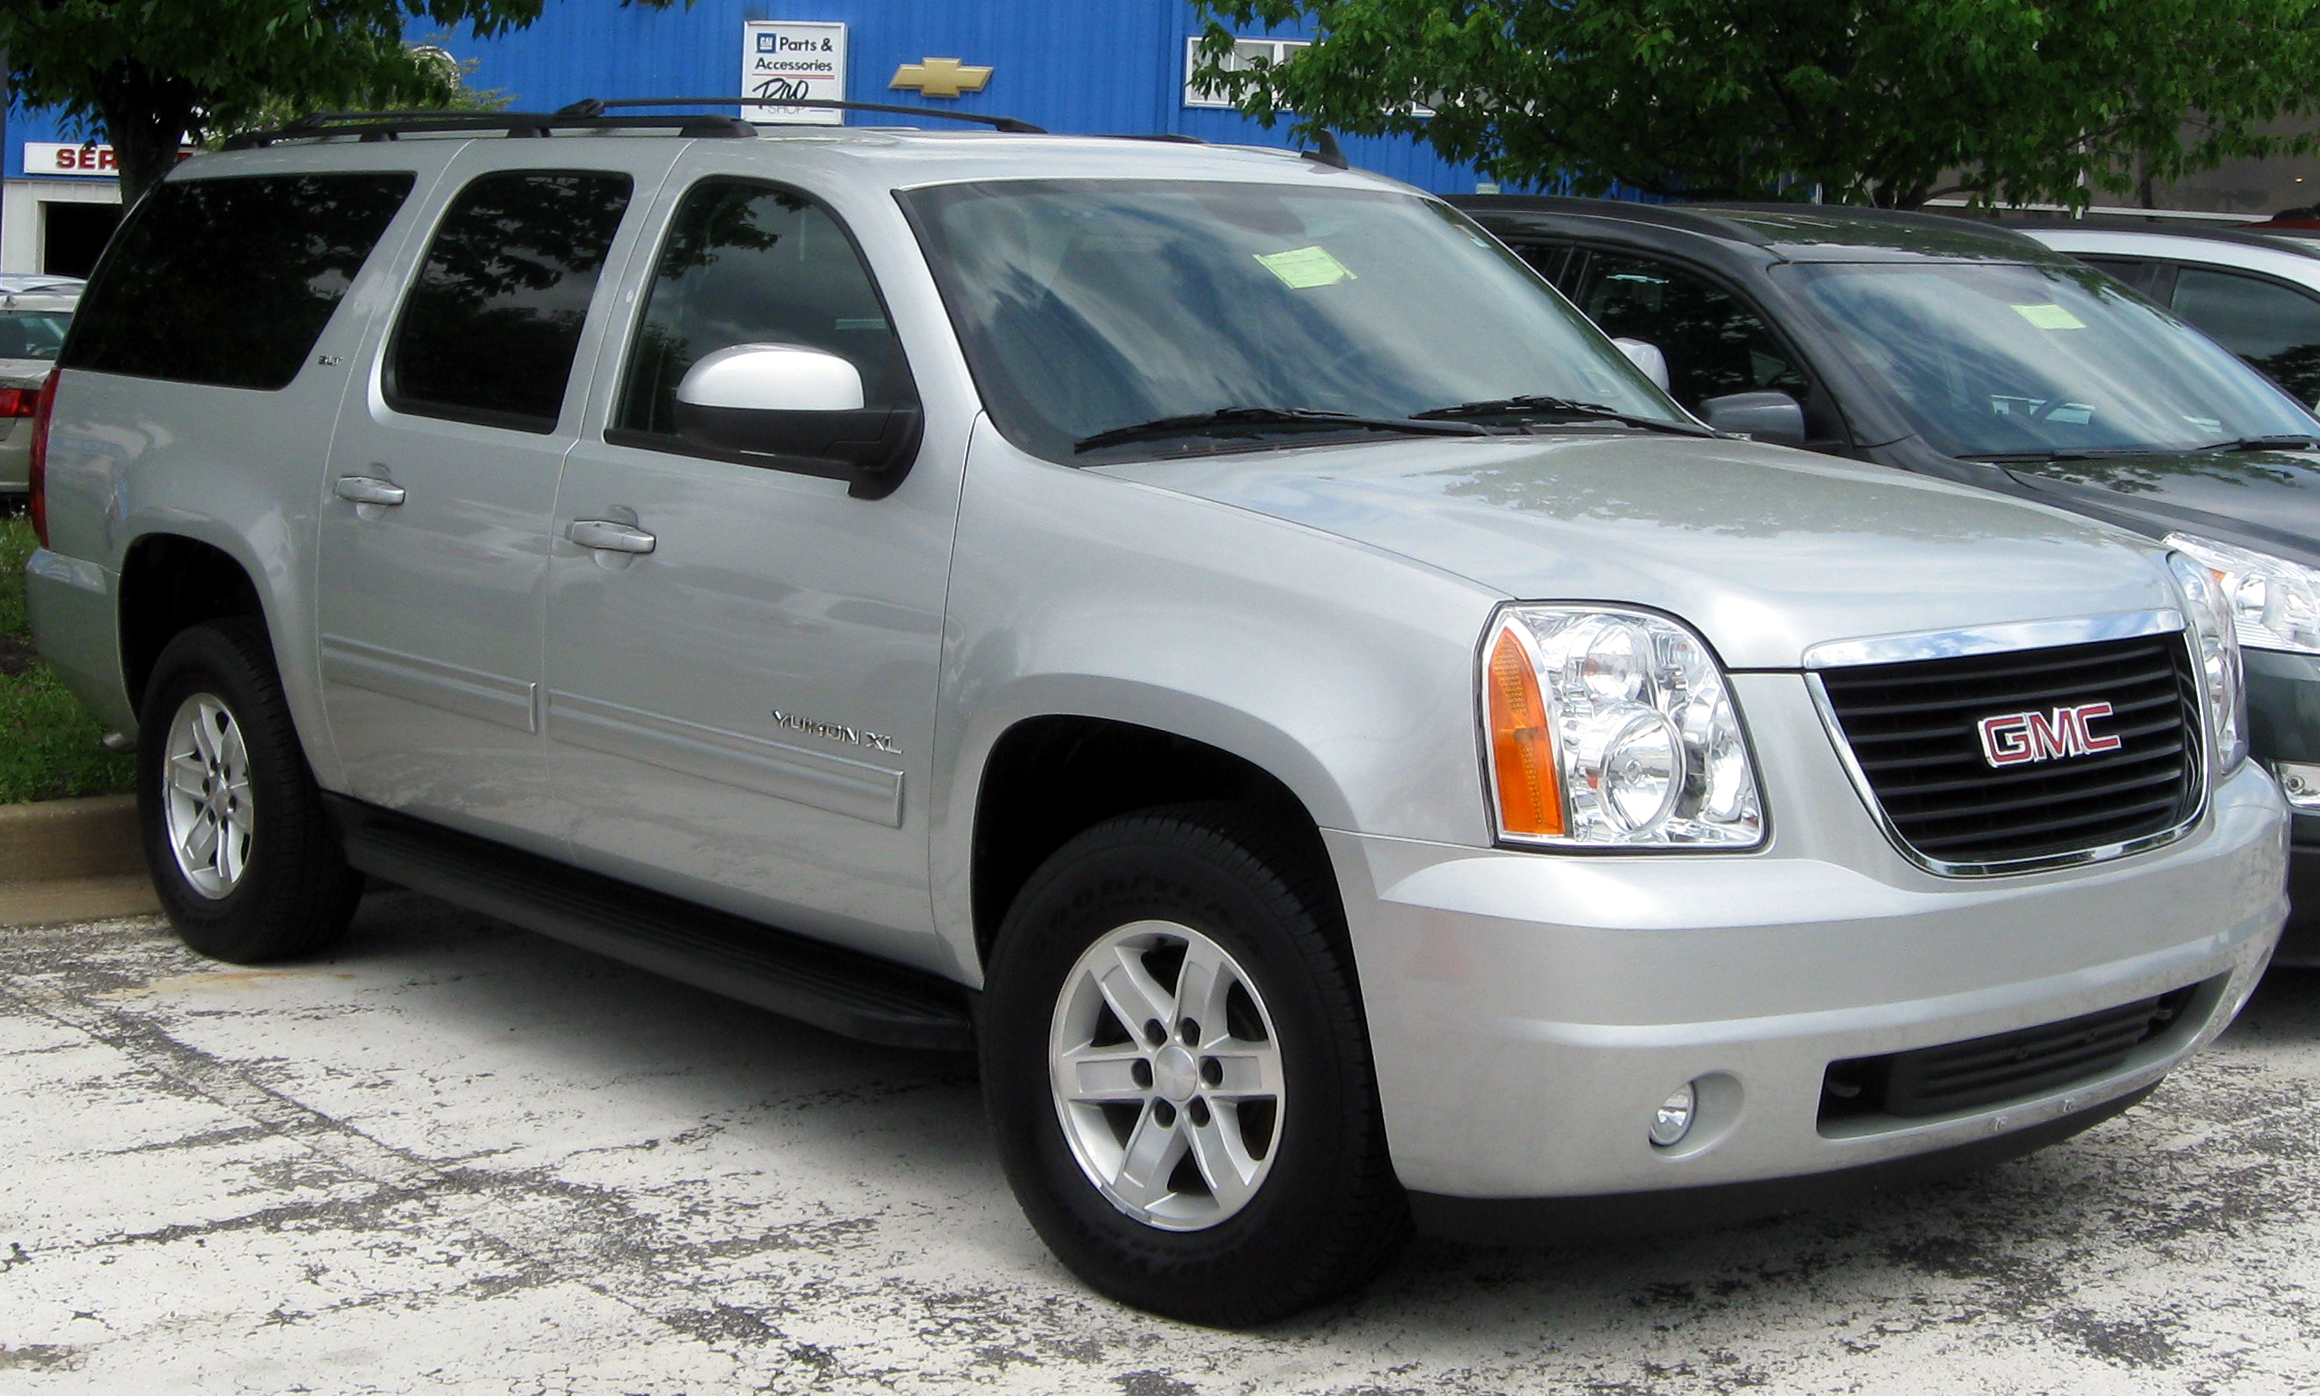 Pictures of gmc yukon #12